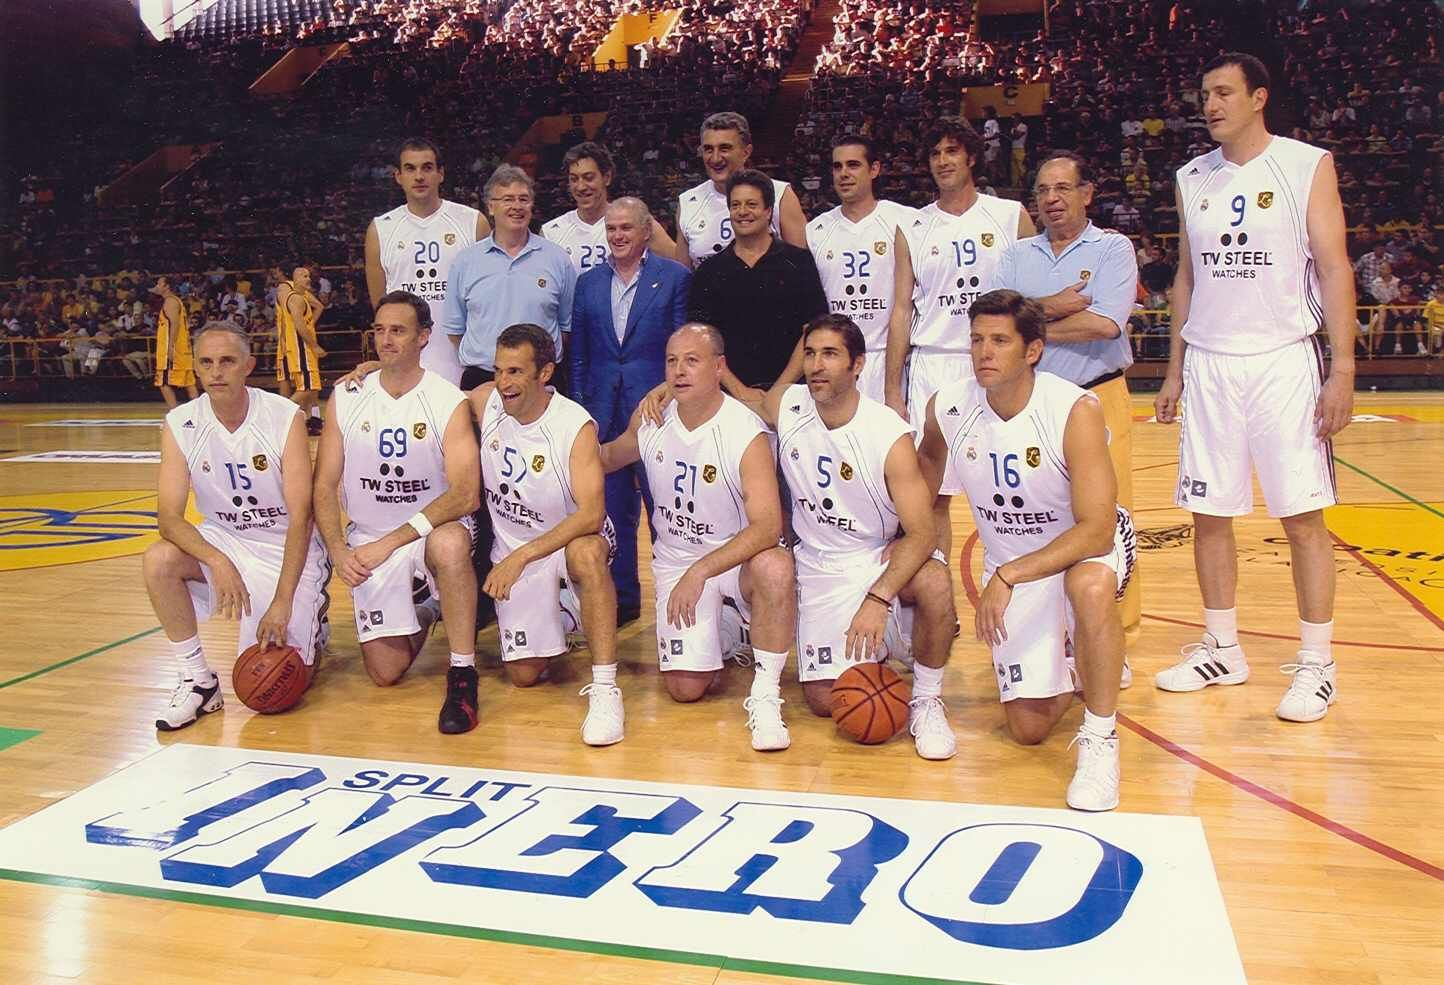 Equipo Baloncesto Real Madrid